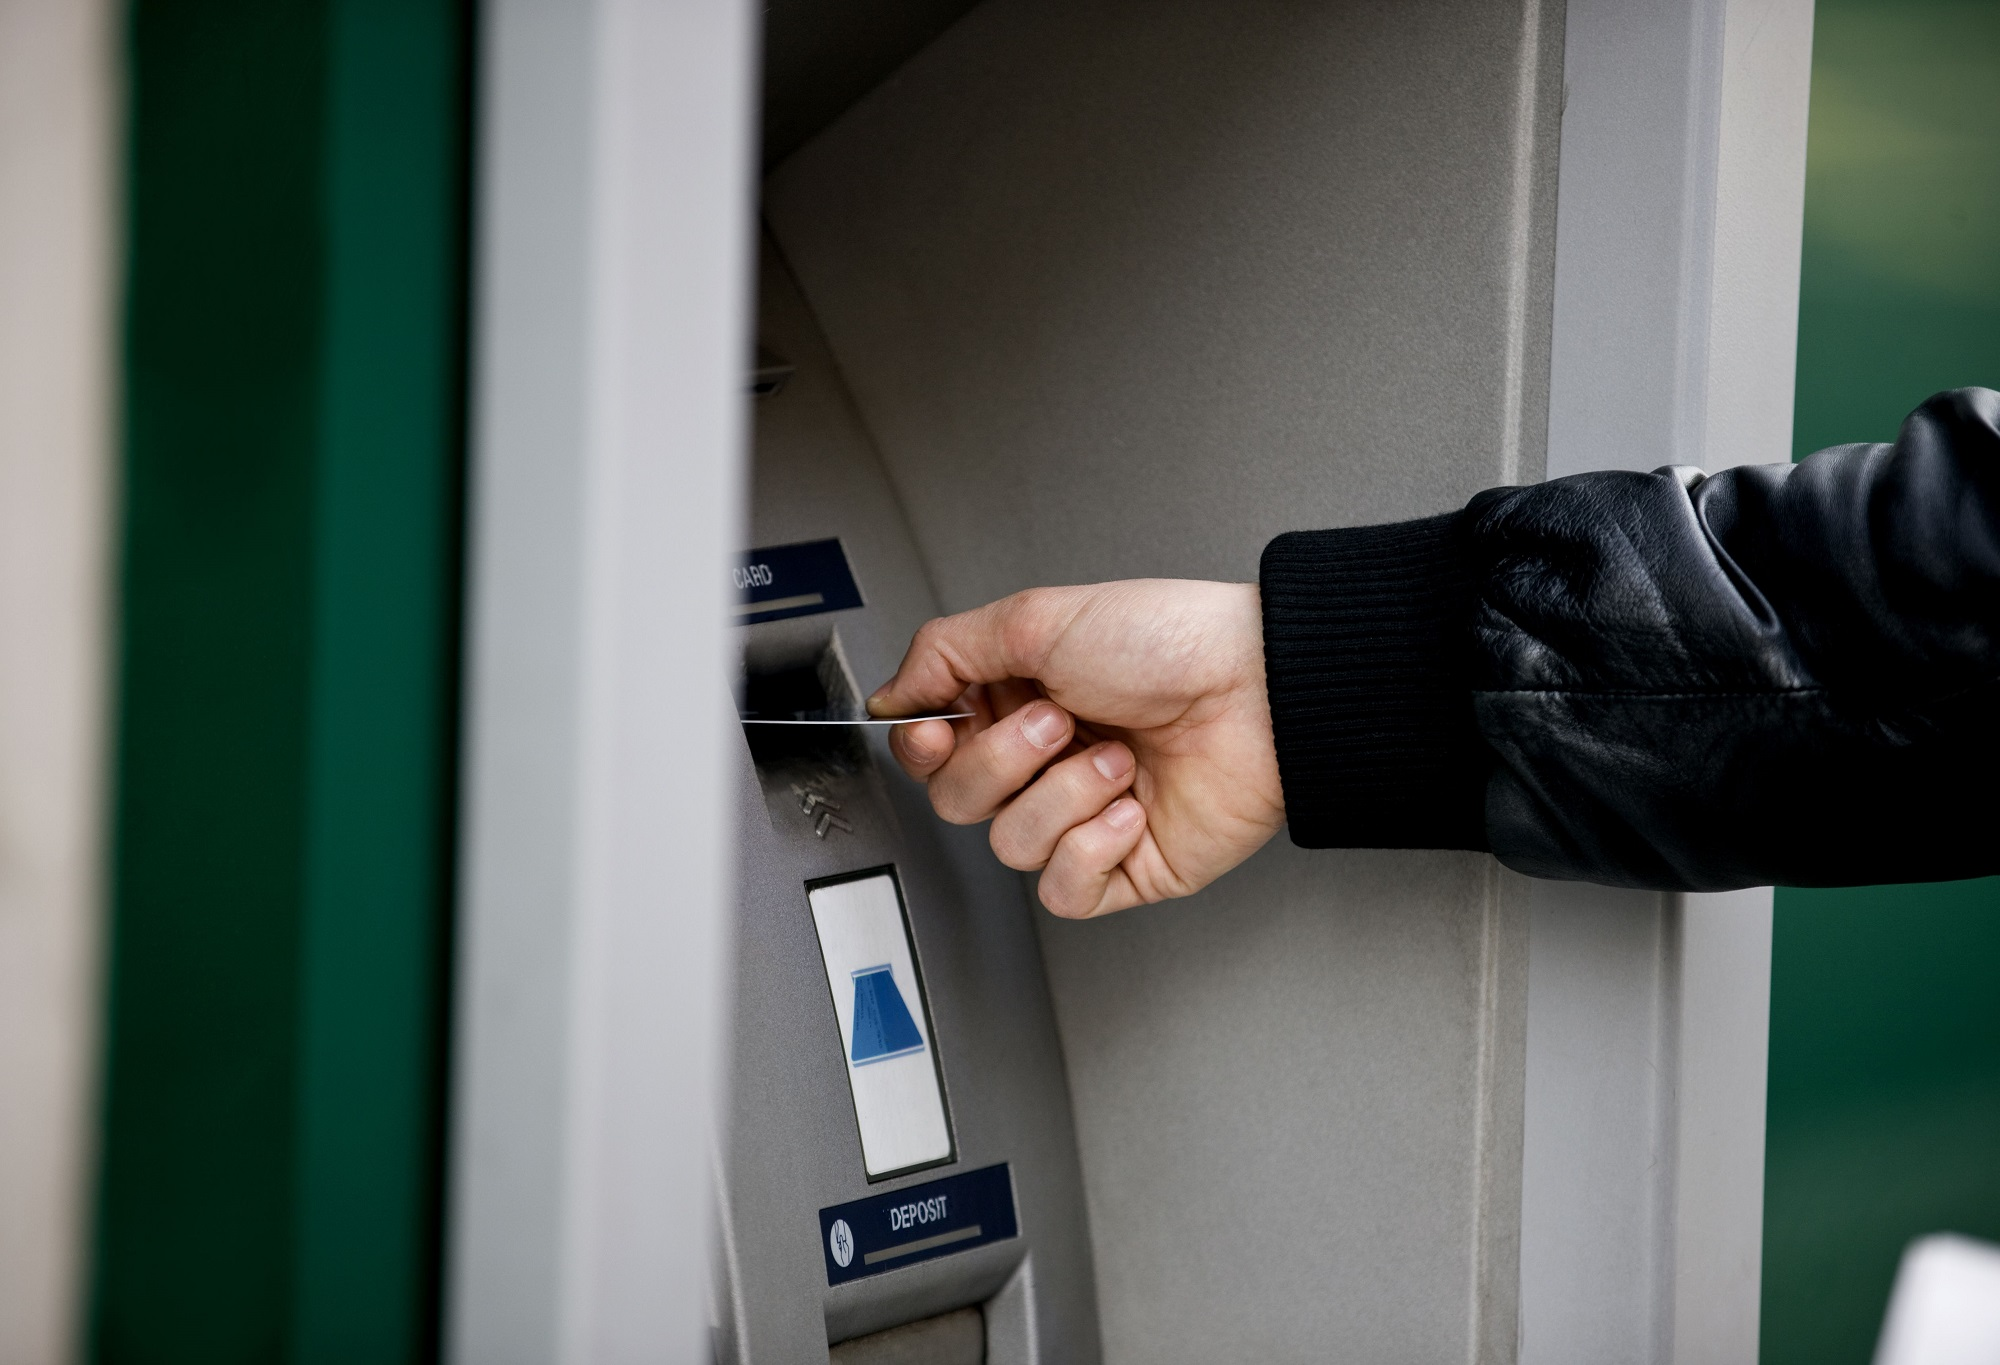 research paper on atm security Microcontroller based secure pin entry method for atm international journal of scientific & engineering research atm security framework ten necessary function.